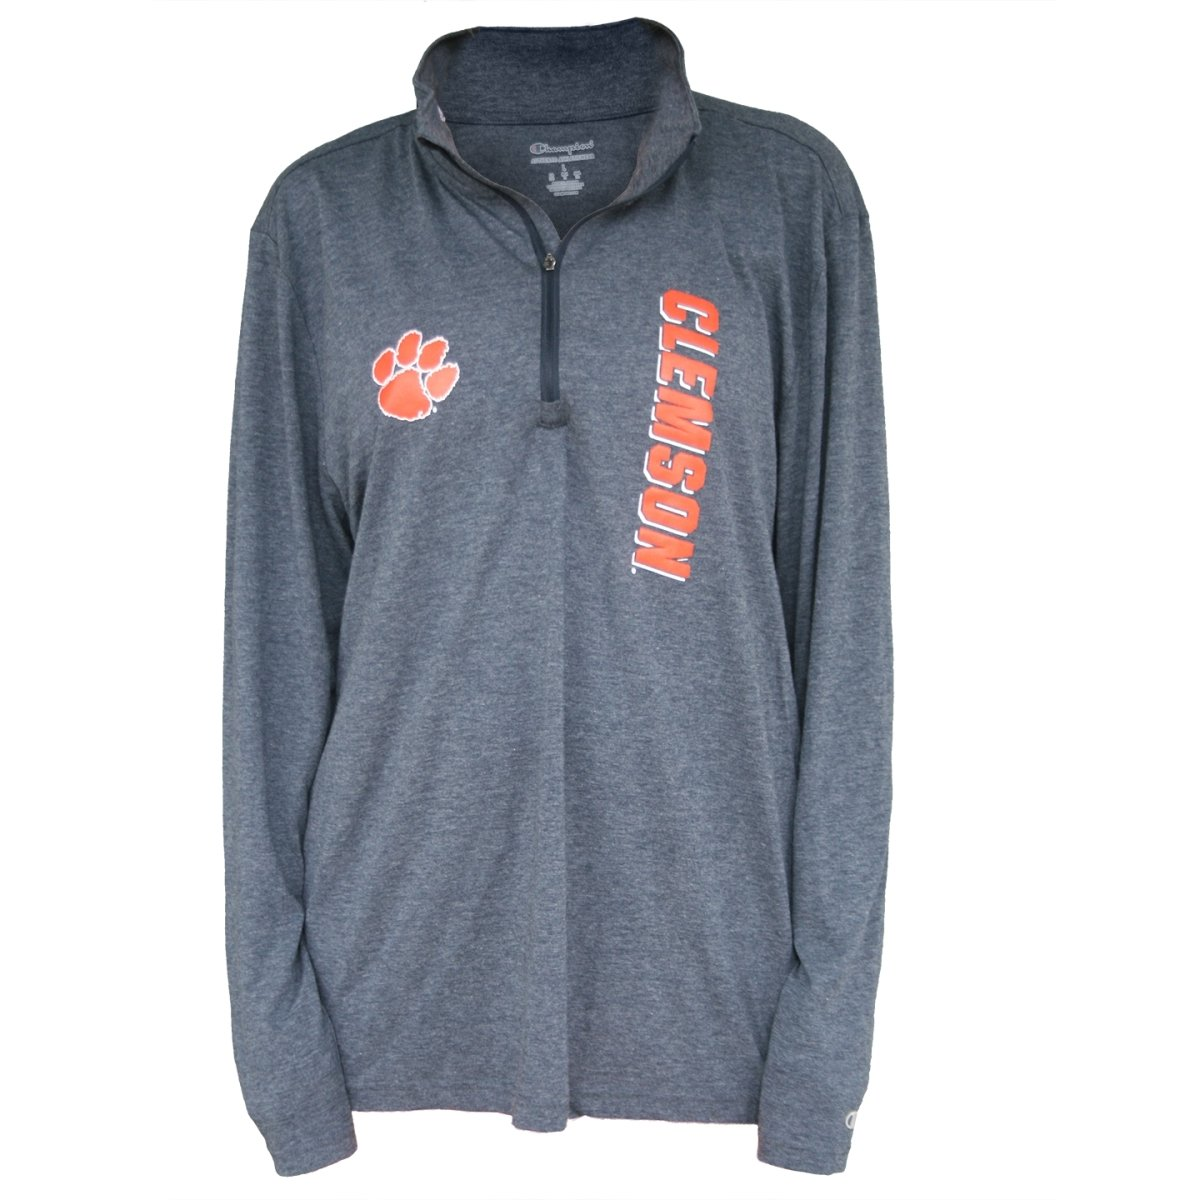 Champion 1/4 Zip Vertical Clemson & Paw - Mr. Knickerbocker